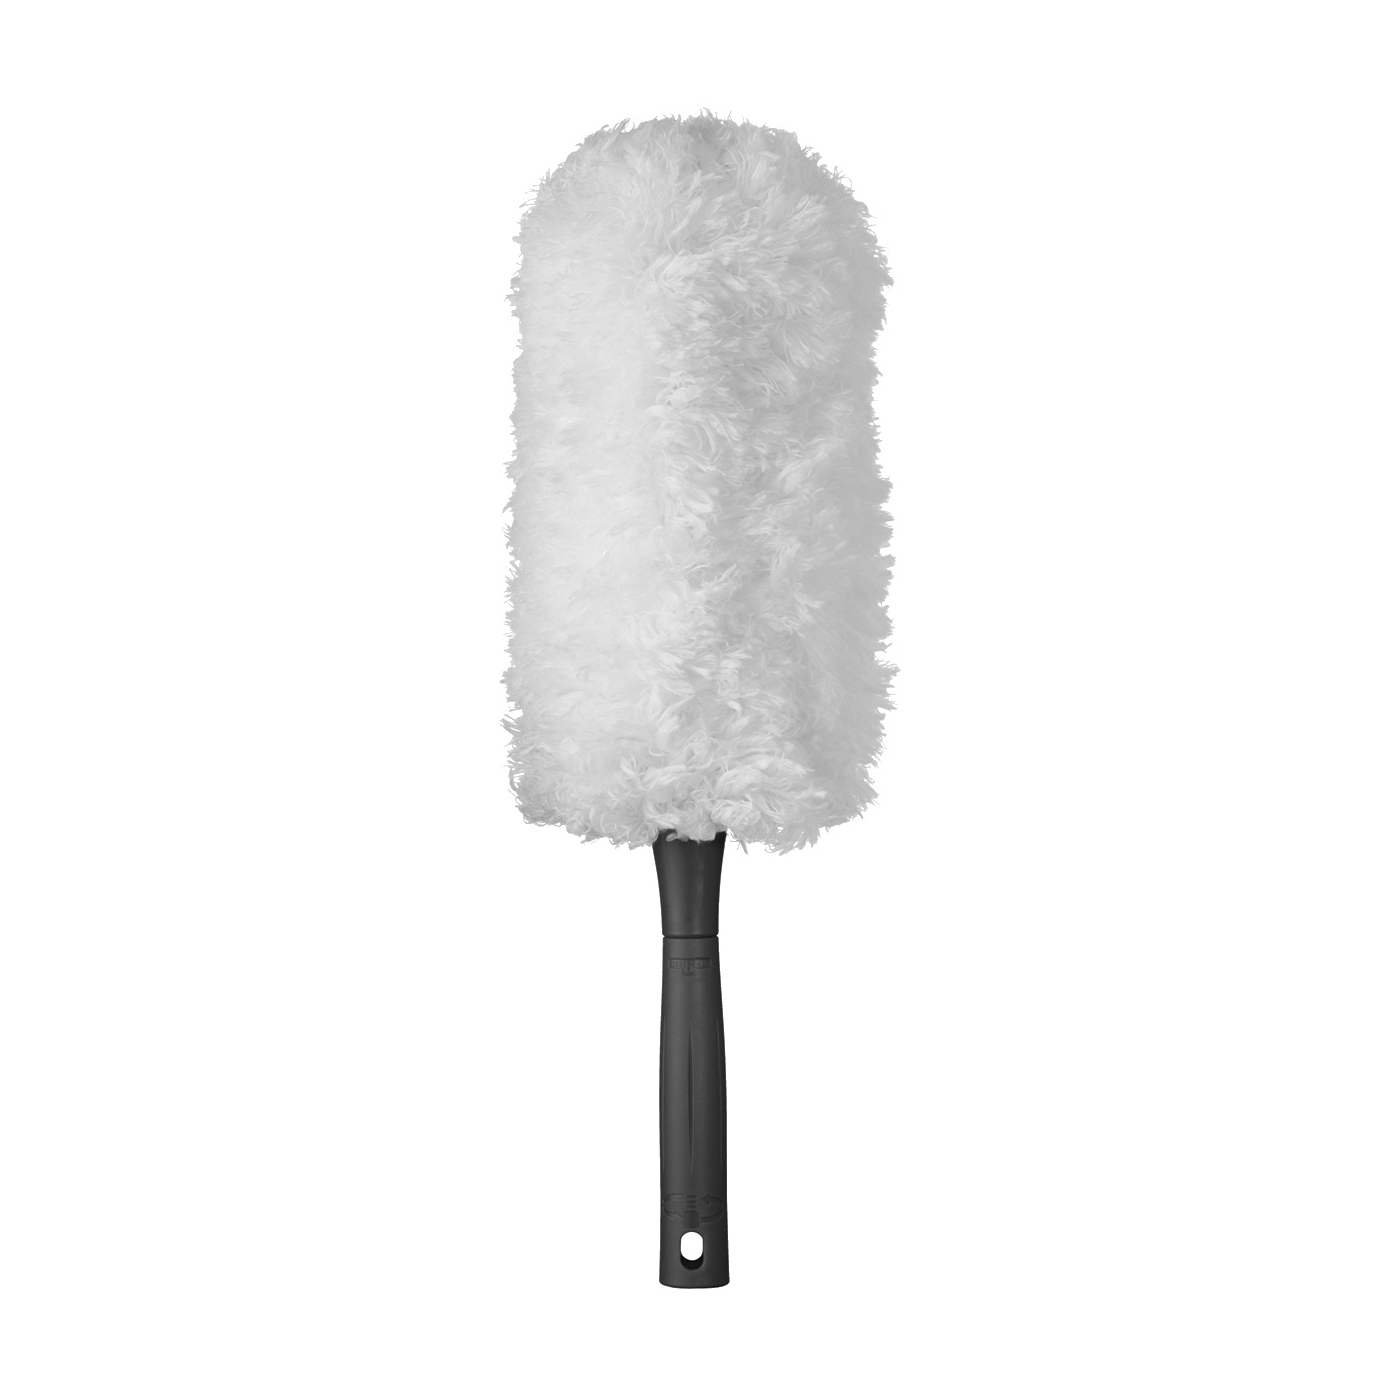 Picture of Unger 964460 Wool Duster, Microfiber Cloth Head